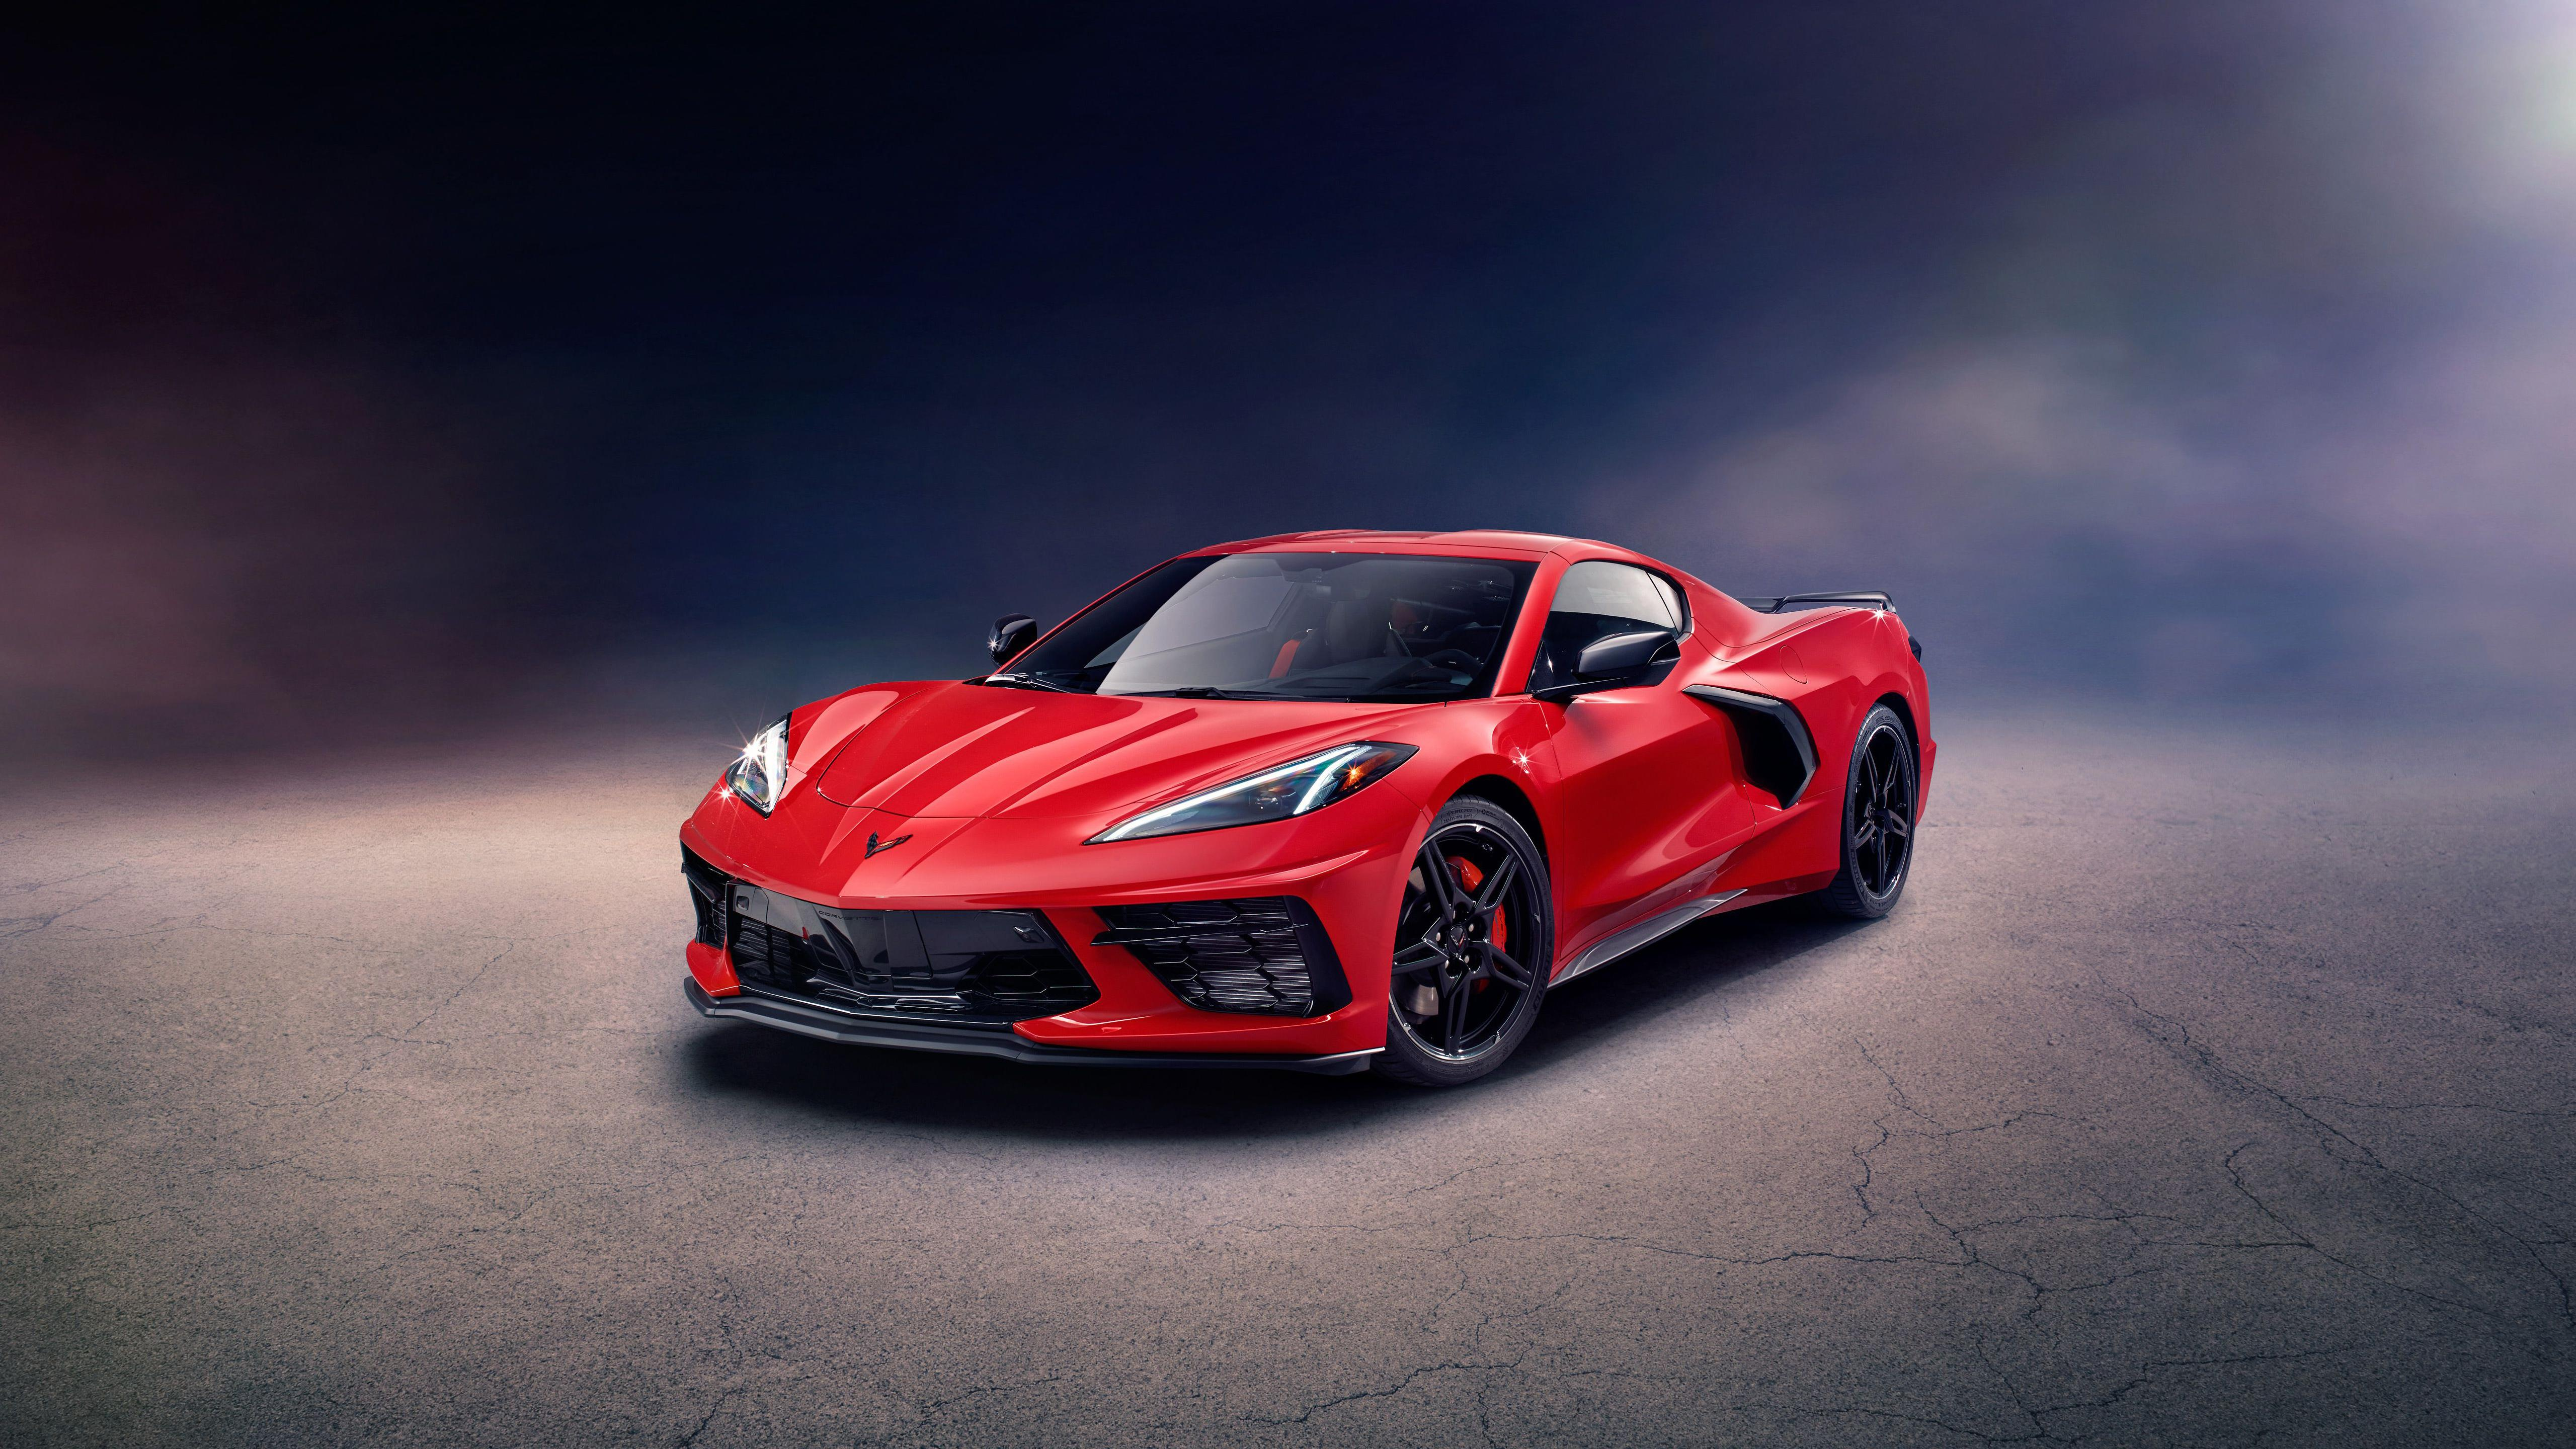 Chevrolet Corvette Stingray Z51 2020 Wallpapers 5120x2880